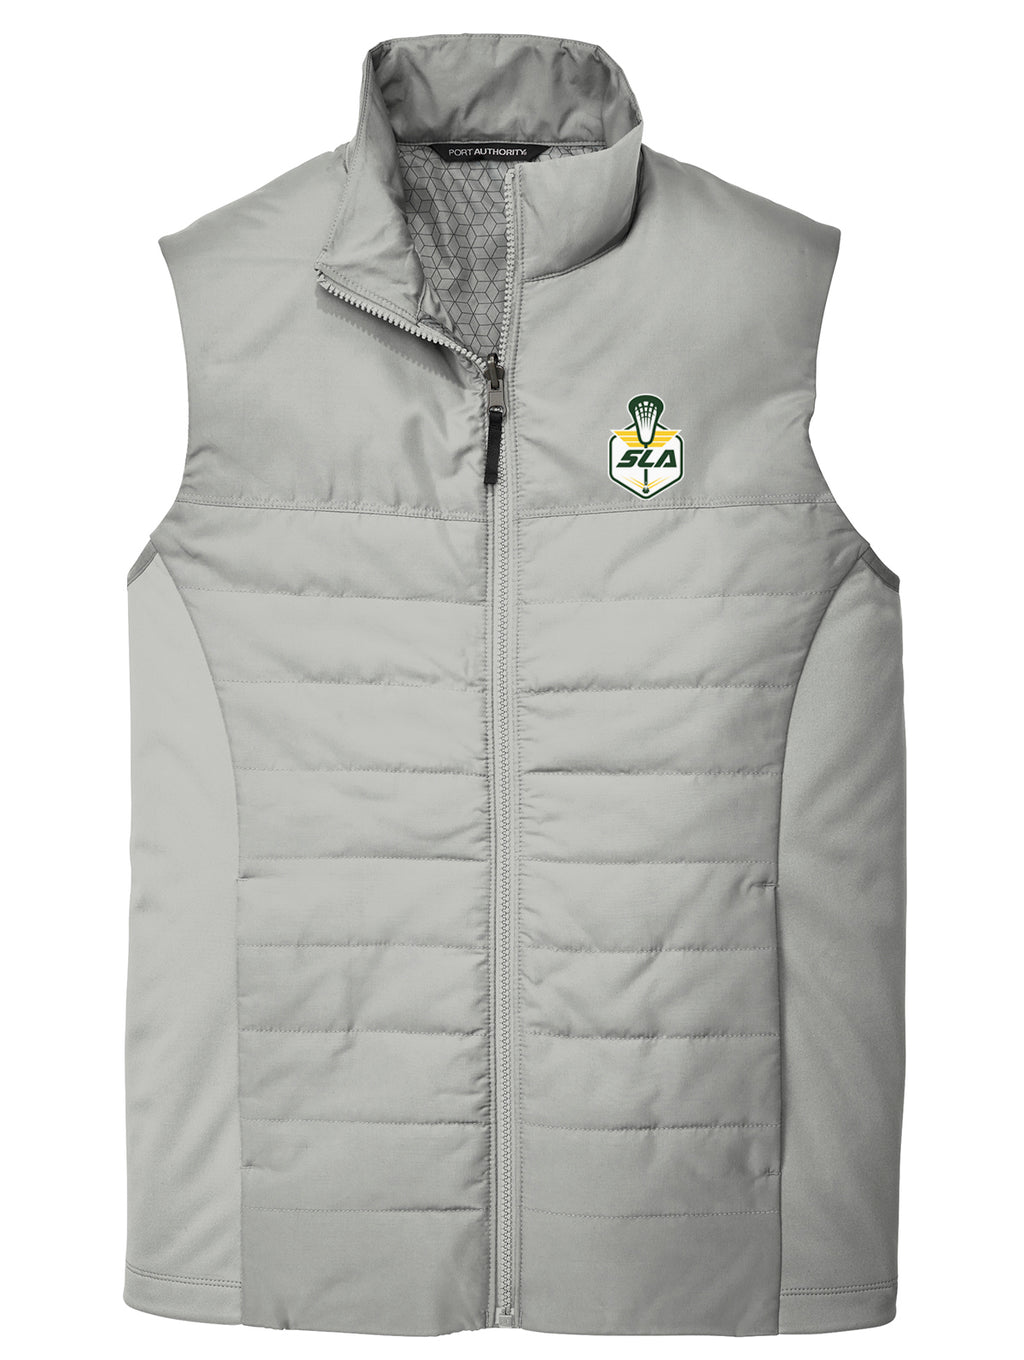 Sycamore Lacrosse Association Gusty Grey Vest